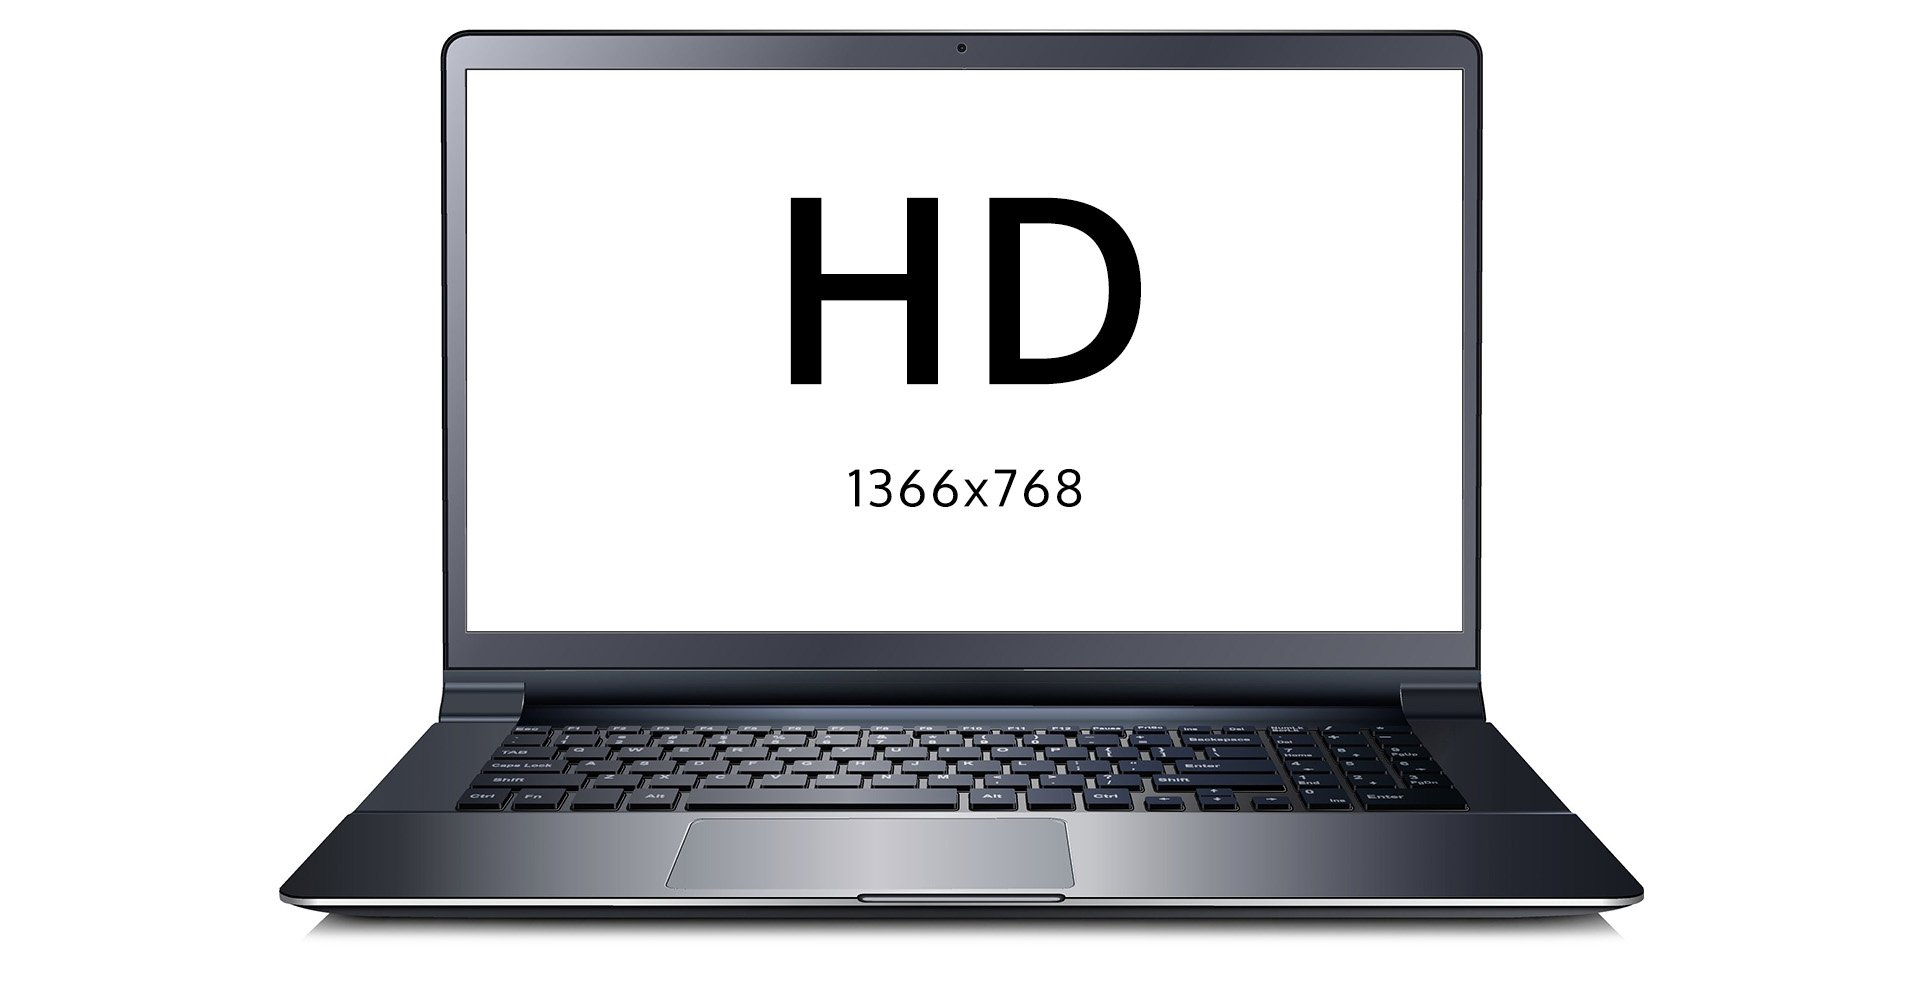 DELL Latitude E6440 i5-4310M 8GB 256GB DVD-RW Win10 PRO                             HD 1366x768 resolutsioon